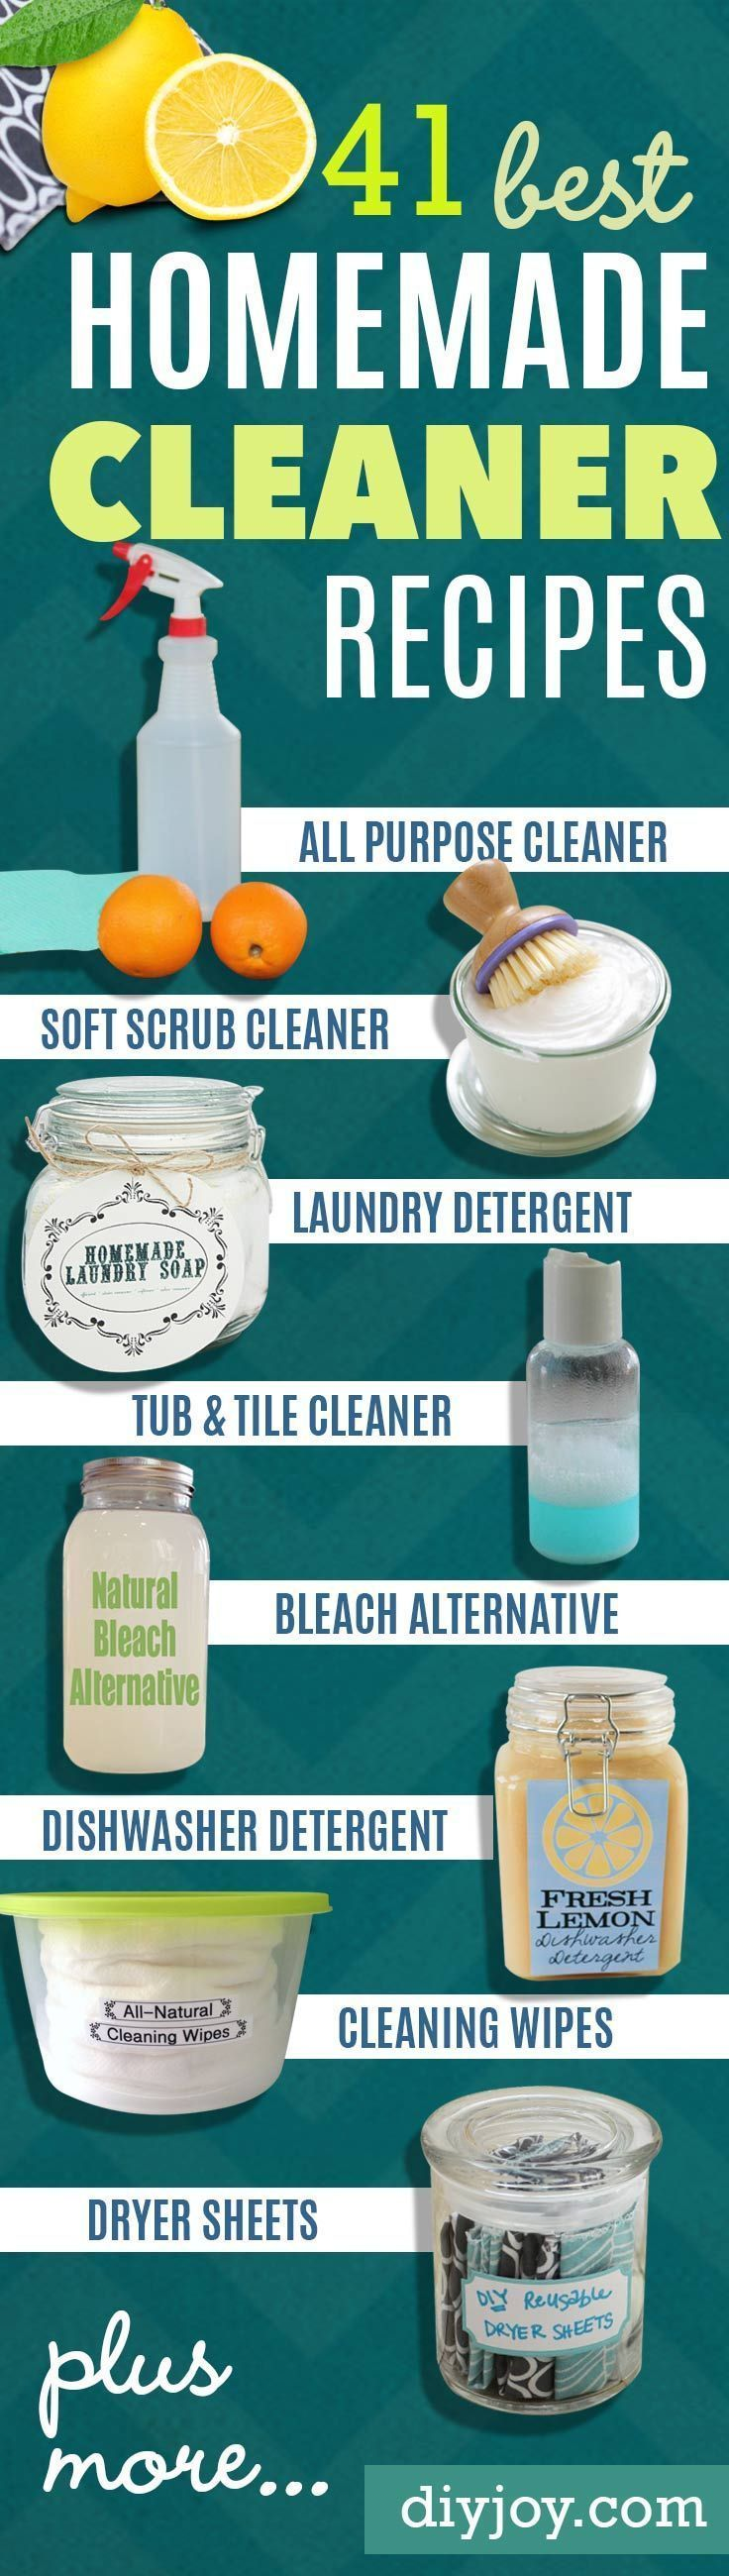 Best Natural Homemade DIY Cleaners And Recipes   All Purposed Home Care And  Cleaning With Vinegar